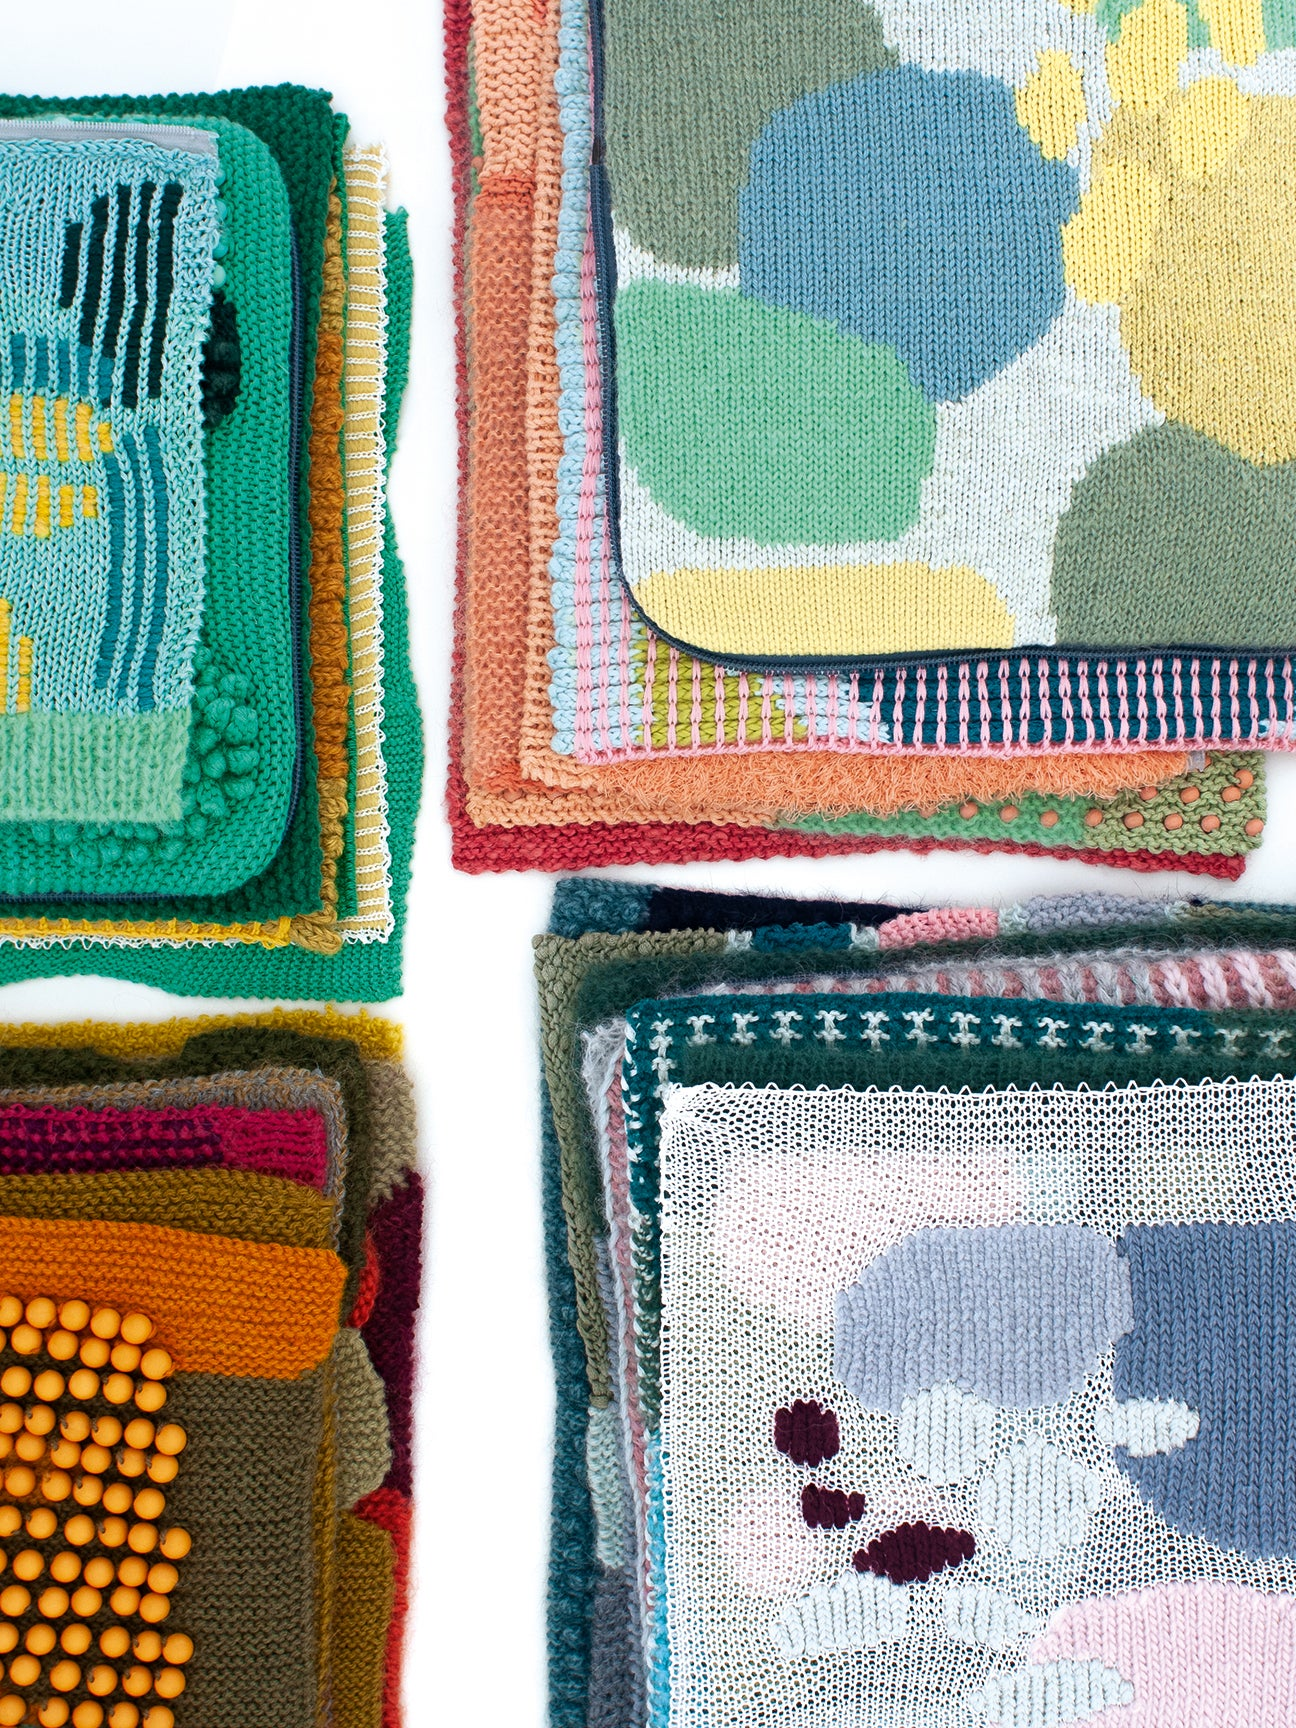 Colorful mixed knitted samples in varied patterns